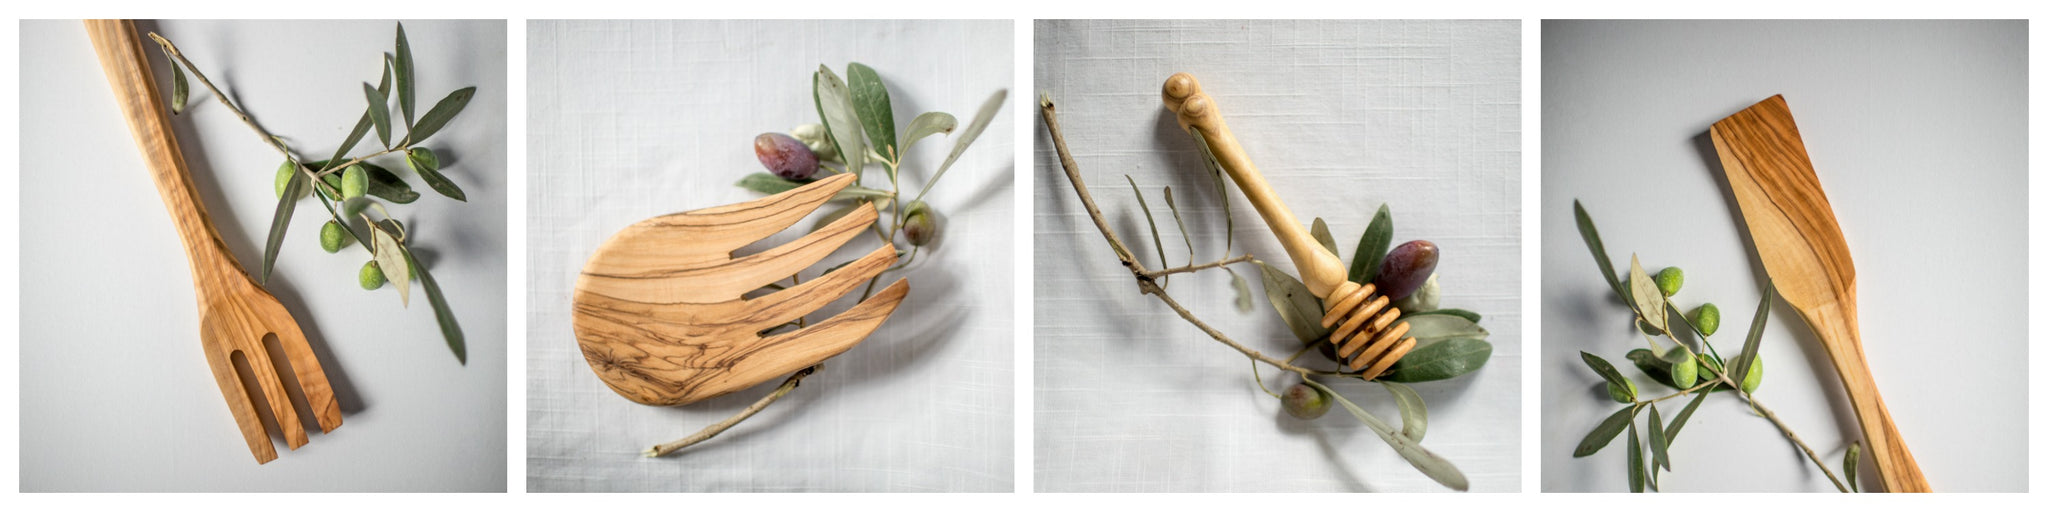 Handcrafted Olivewood Utensils